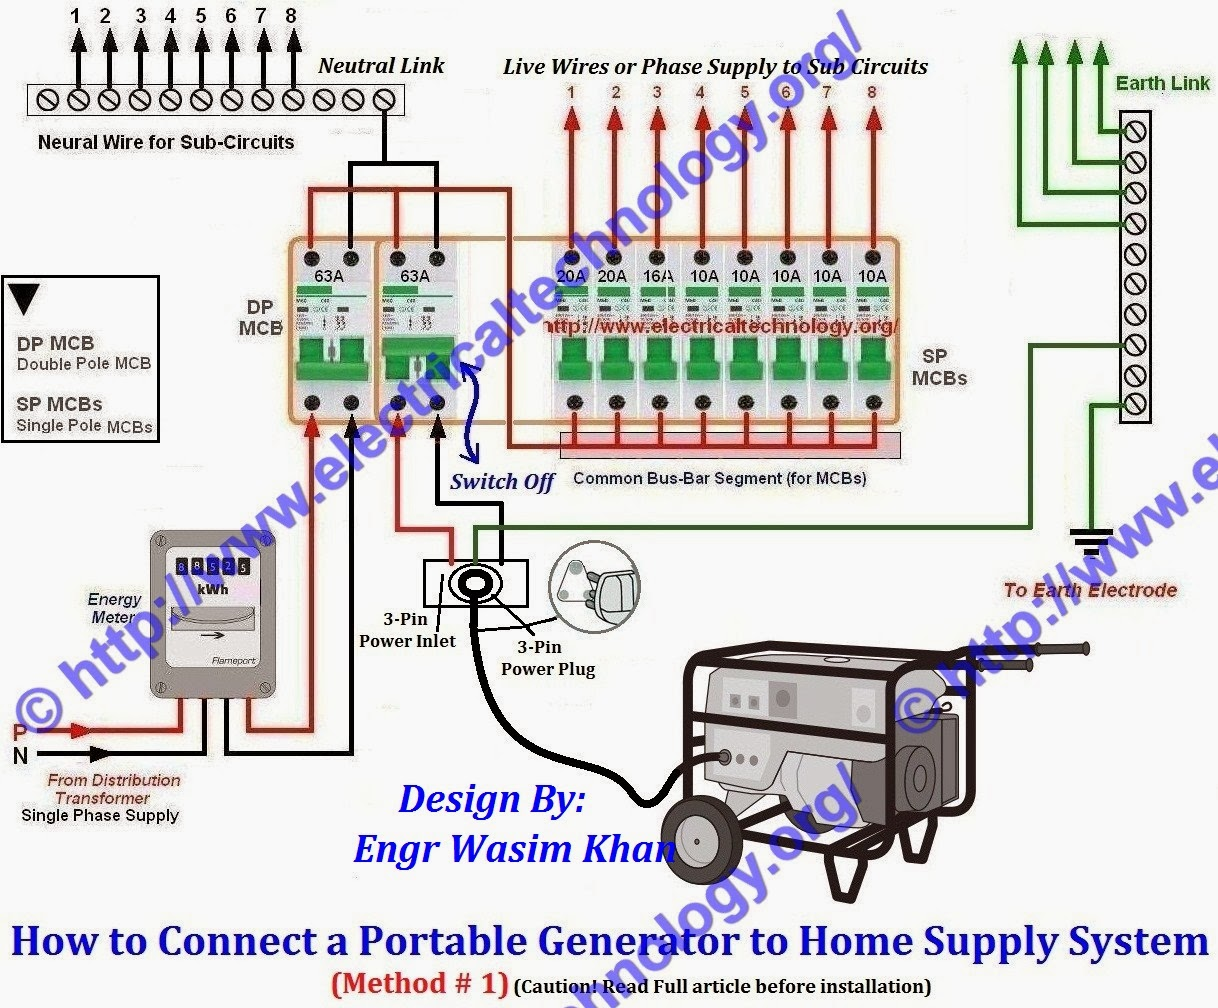 Merrill Pressure Switch Wiring Diagram Little League Baseball Field 3 Phase Wire Free Engine Image